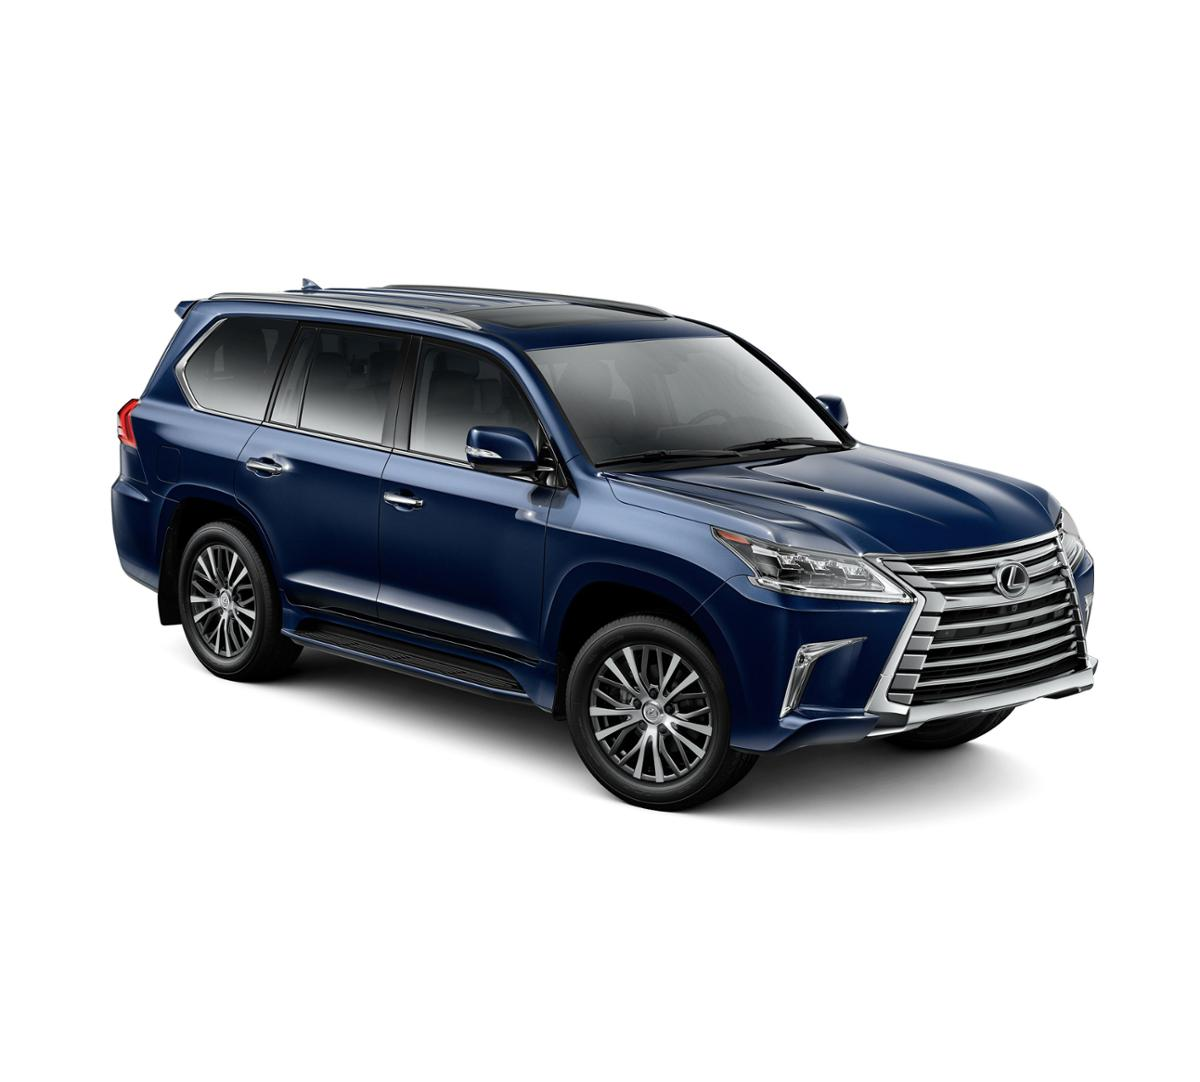 2019 Lexus LX 570 Vehicle Photo in Houston, TX 77074